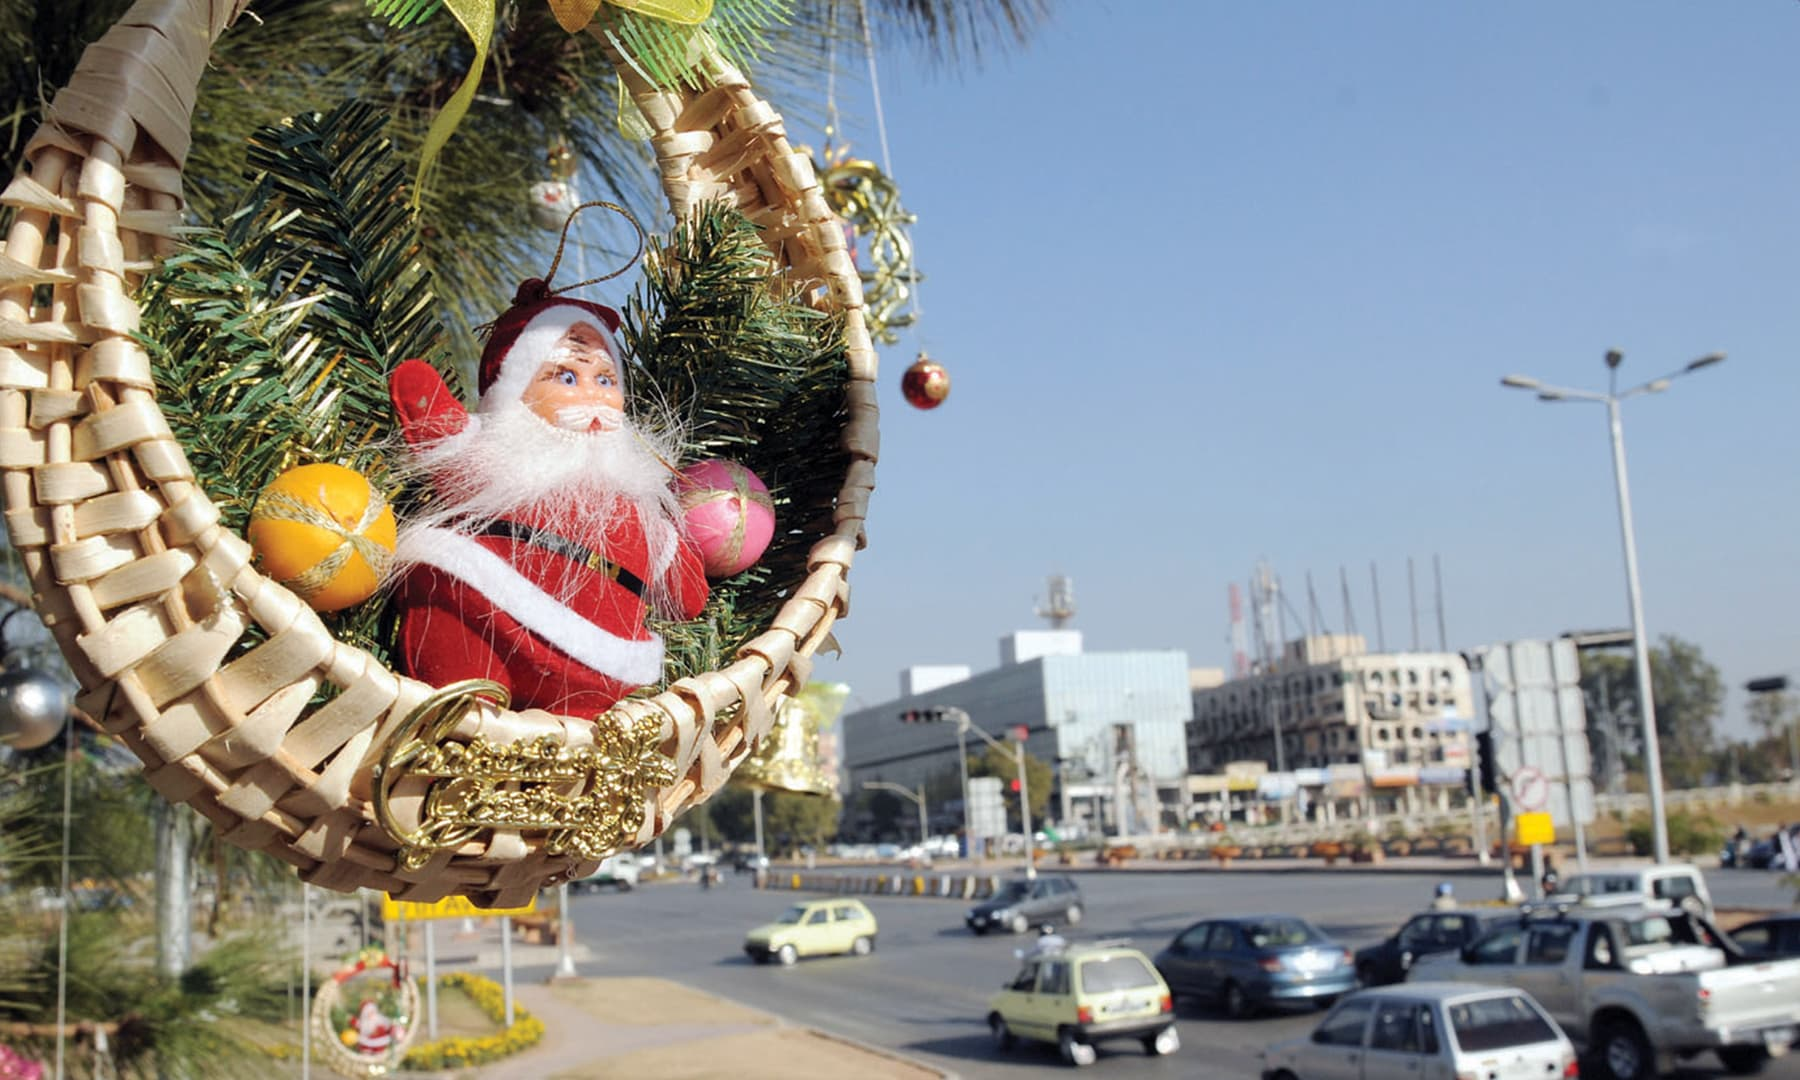 A decorative Christmas ornament hangs from a tree at Jinnah Avenue in Islamabad; the road has been decorated with Christmas buntings and lights | White Star